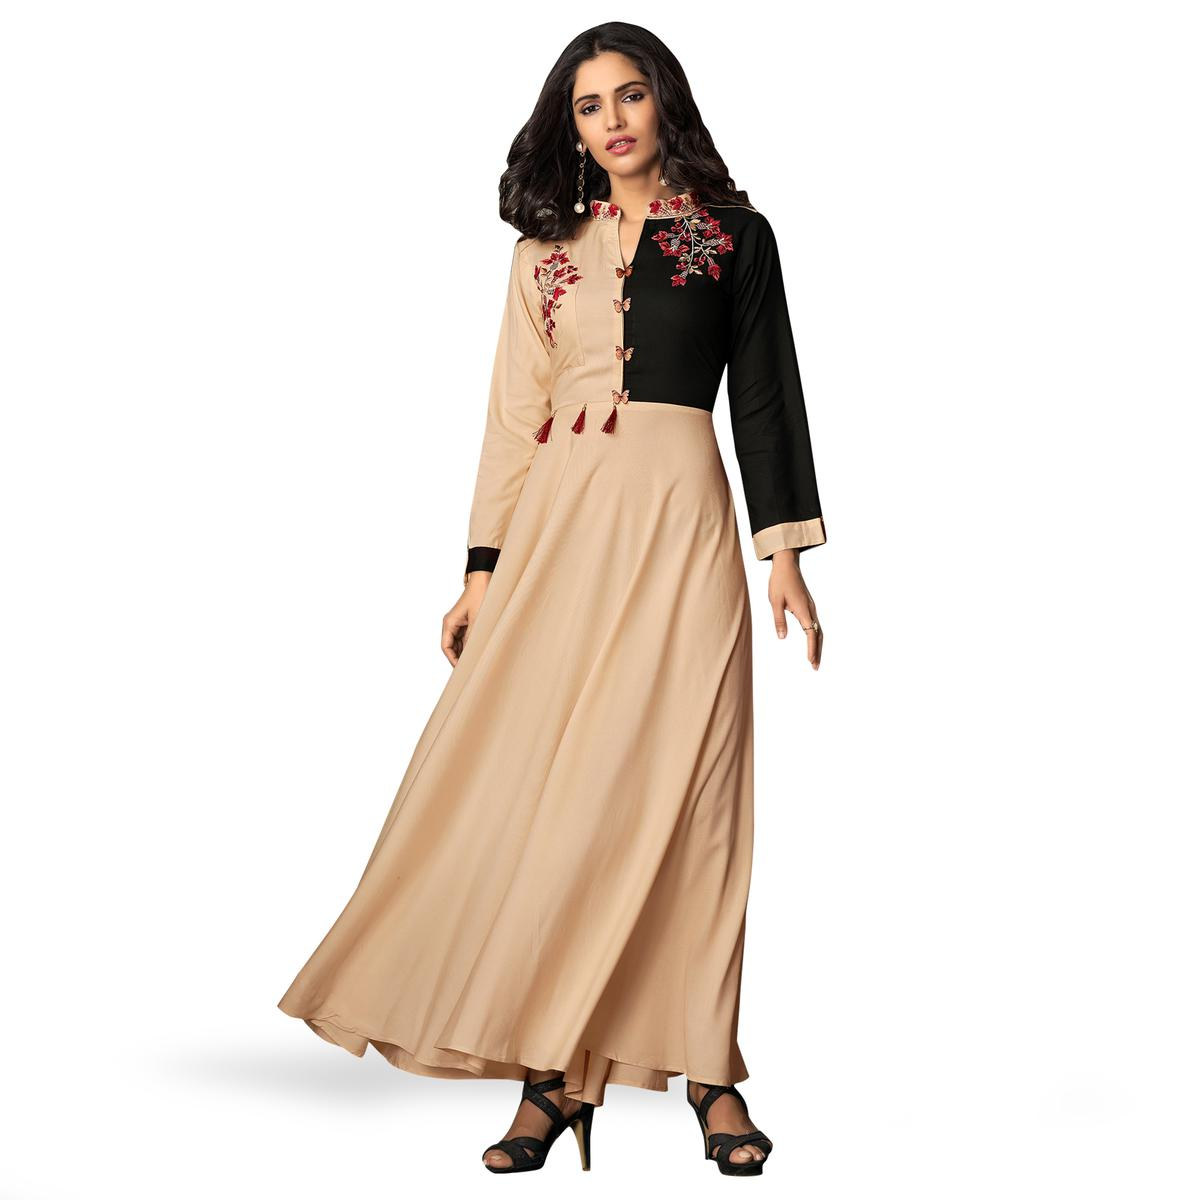 Engrossing Light Peach-Black Colored Partywear Embroidered Rayon Kurti